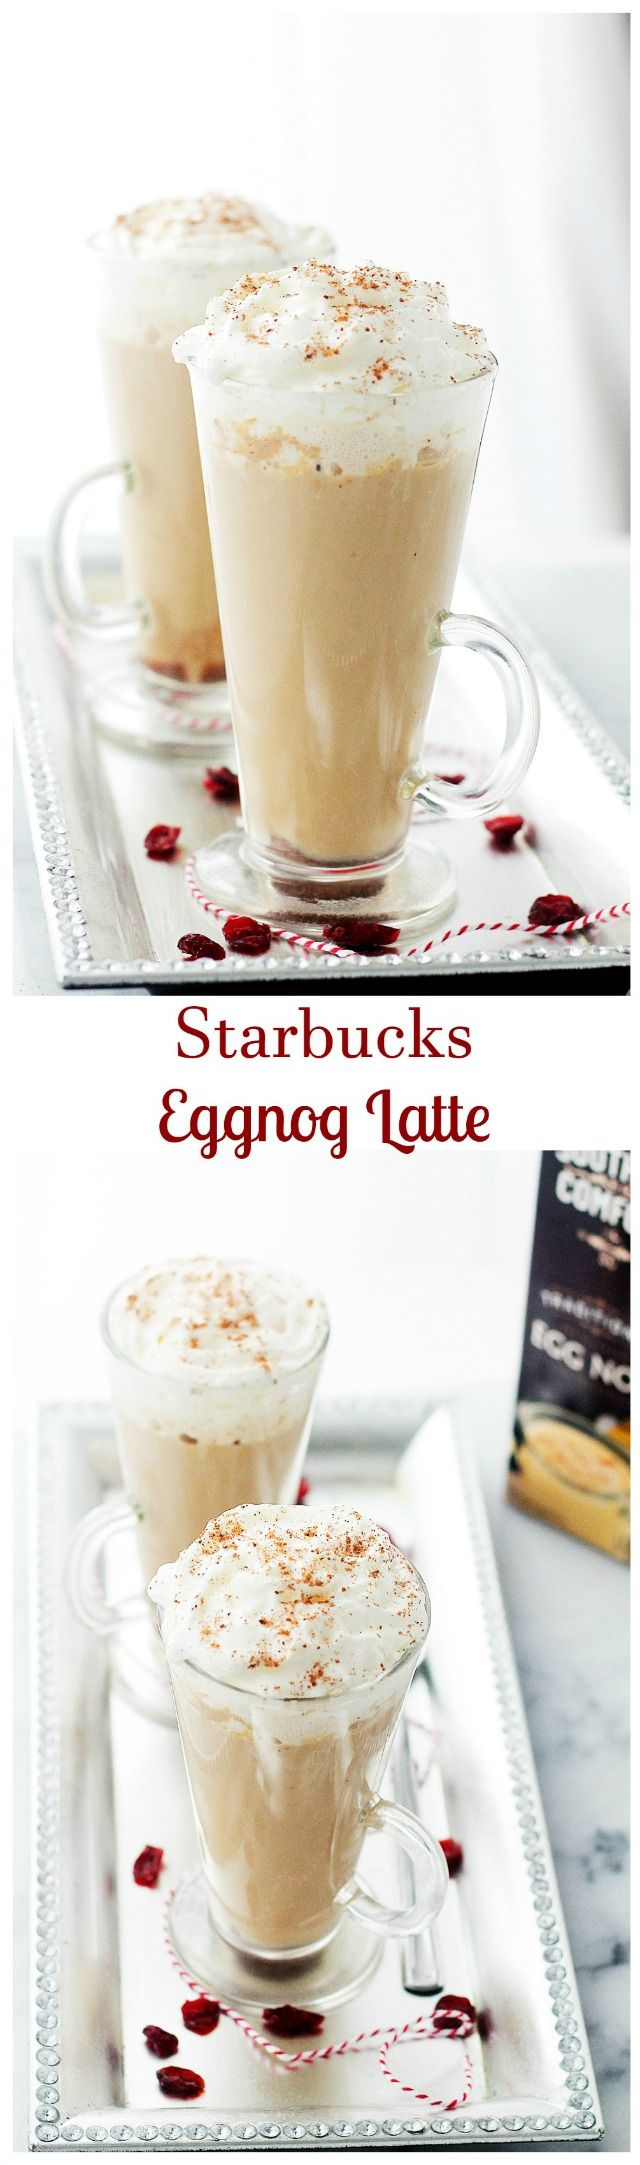 Starbucks Eggnog Latte – This festive, Starbucks-inspired latte is made with strong brewed espresso, steamed eggnog and milk. Brown sugar and nutmeg, too. Save yourself 5$ and make it at home – it is delicious!!